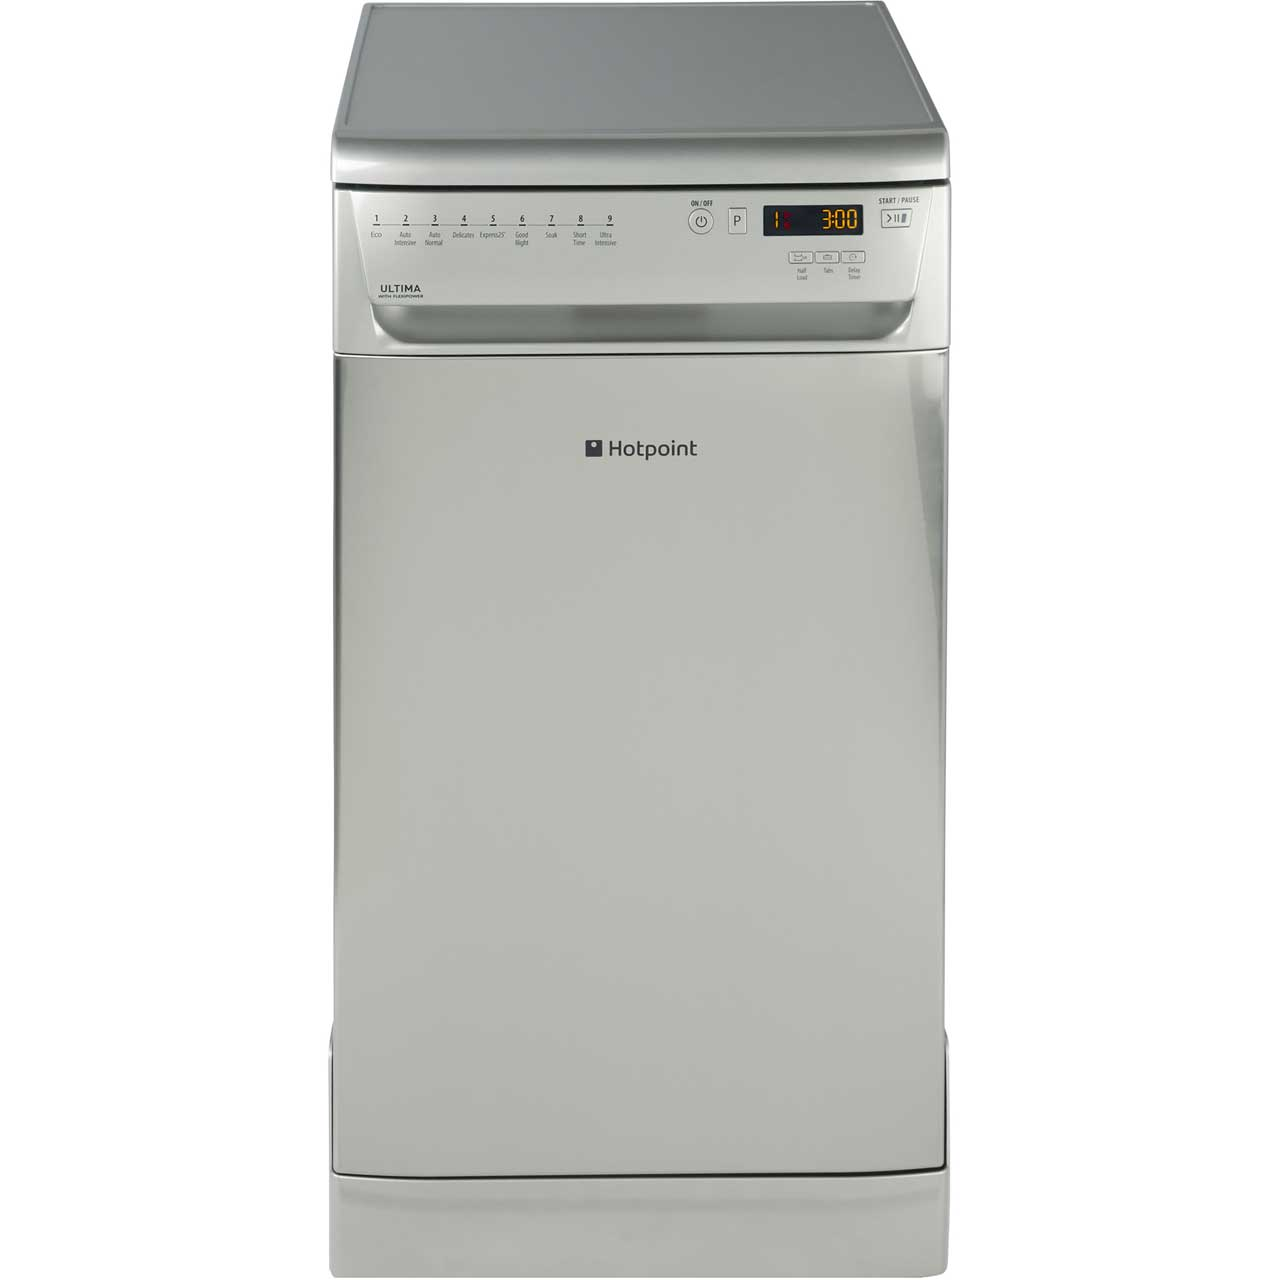 Hotpoint Ultima SIUF32120X Free Standing Slimline Dishwasher in Stainless Steel